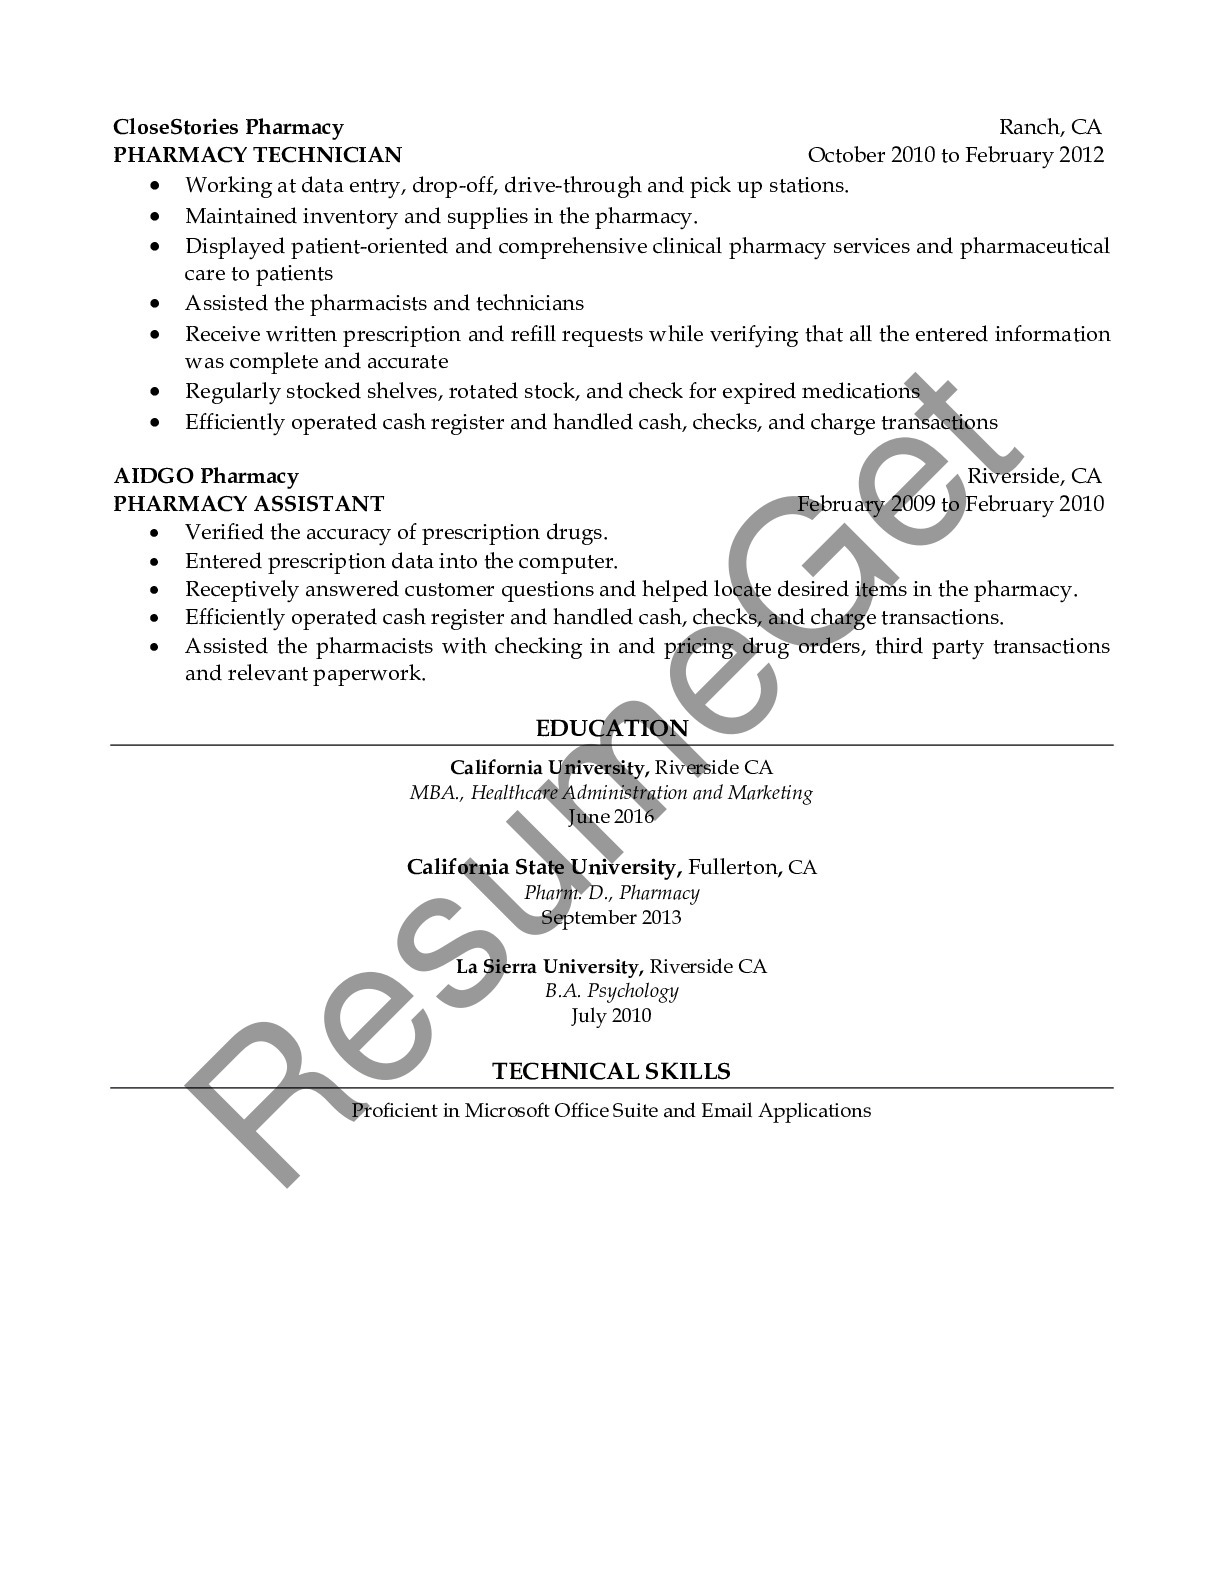 CV Example for Account Specialist